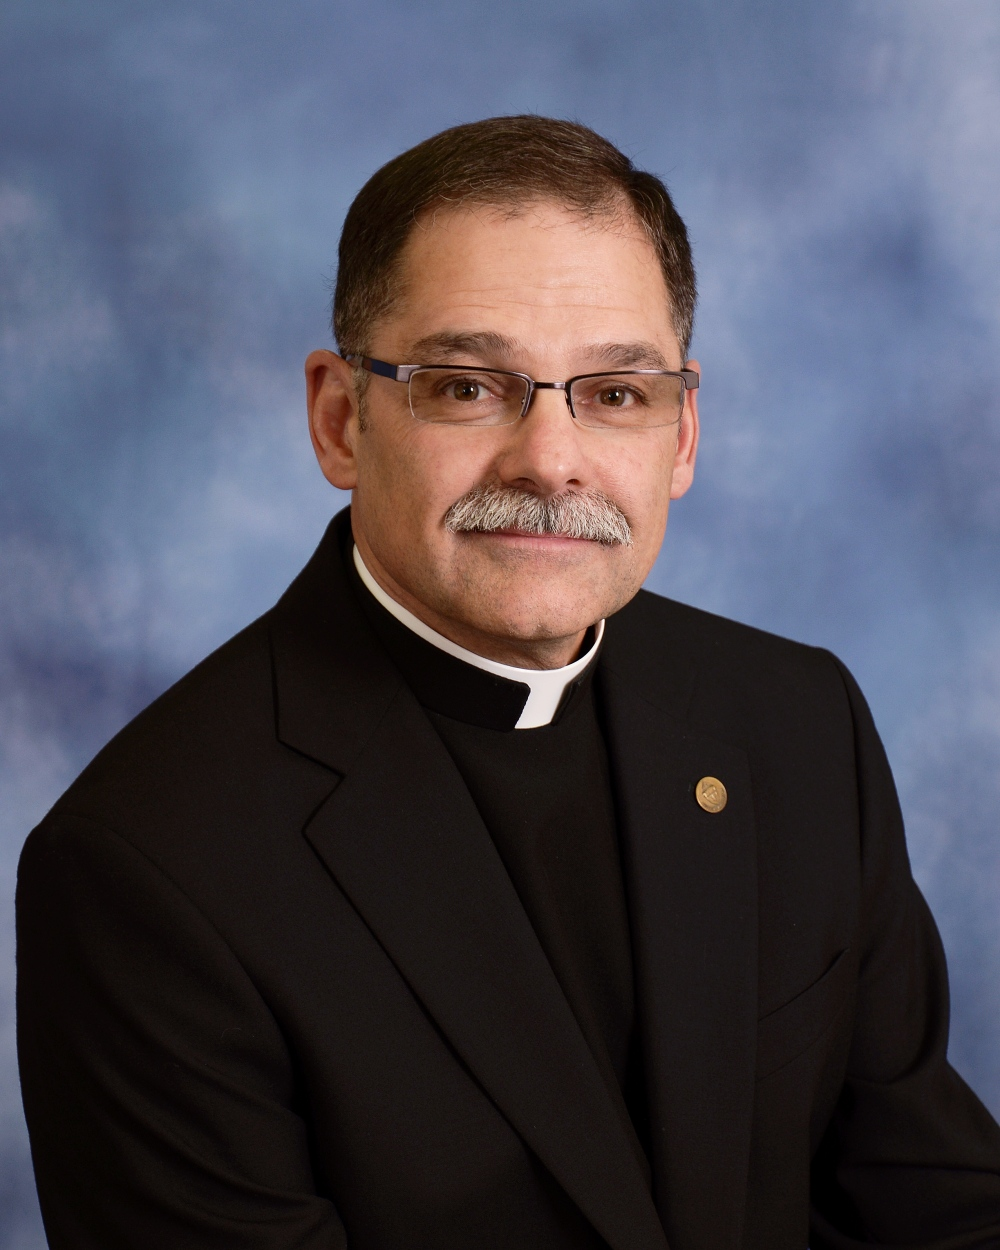 Fr. Rick Courier